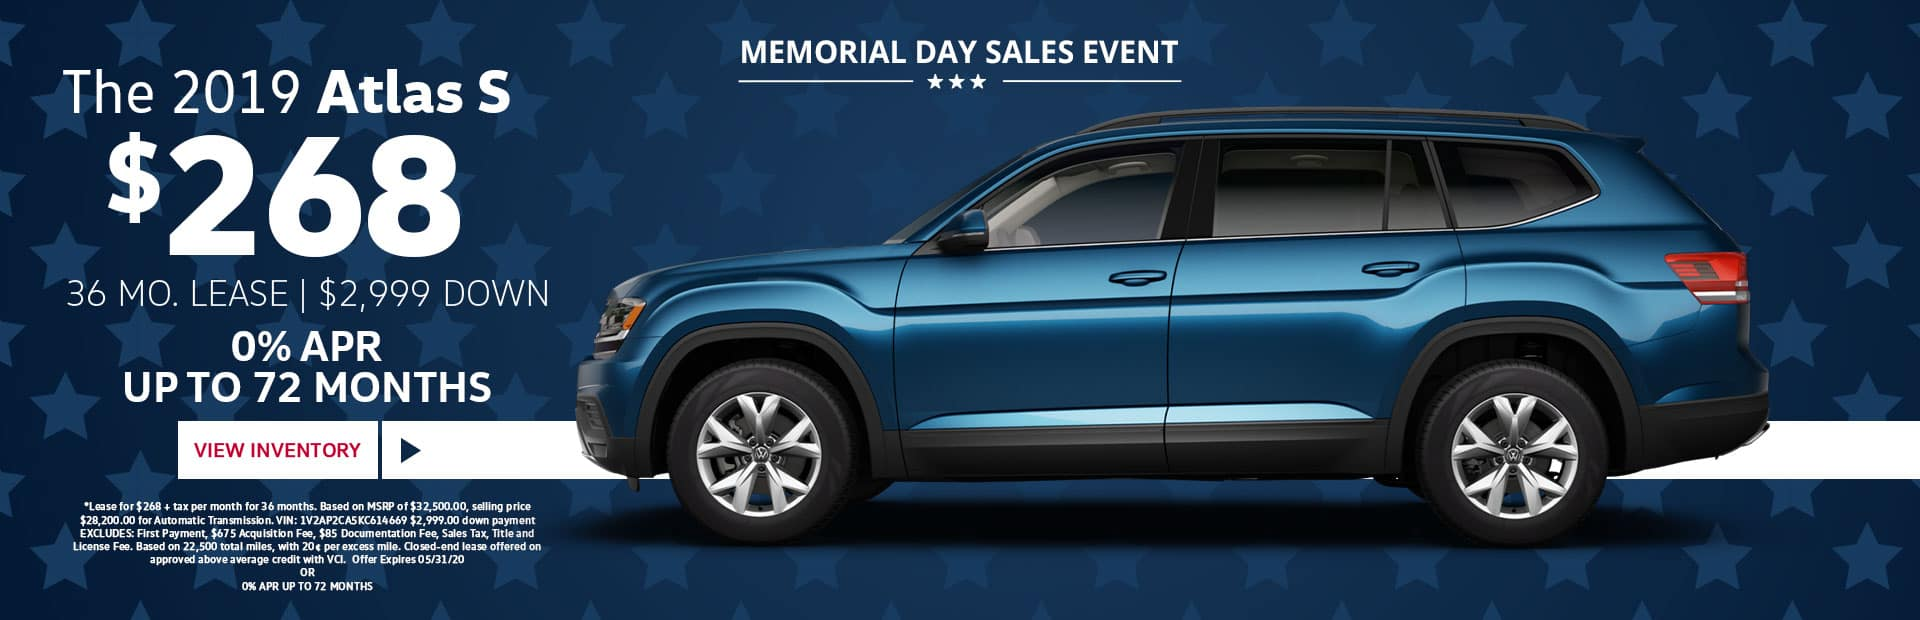 2020 vw atlas s special memorial day lease special